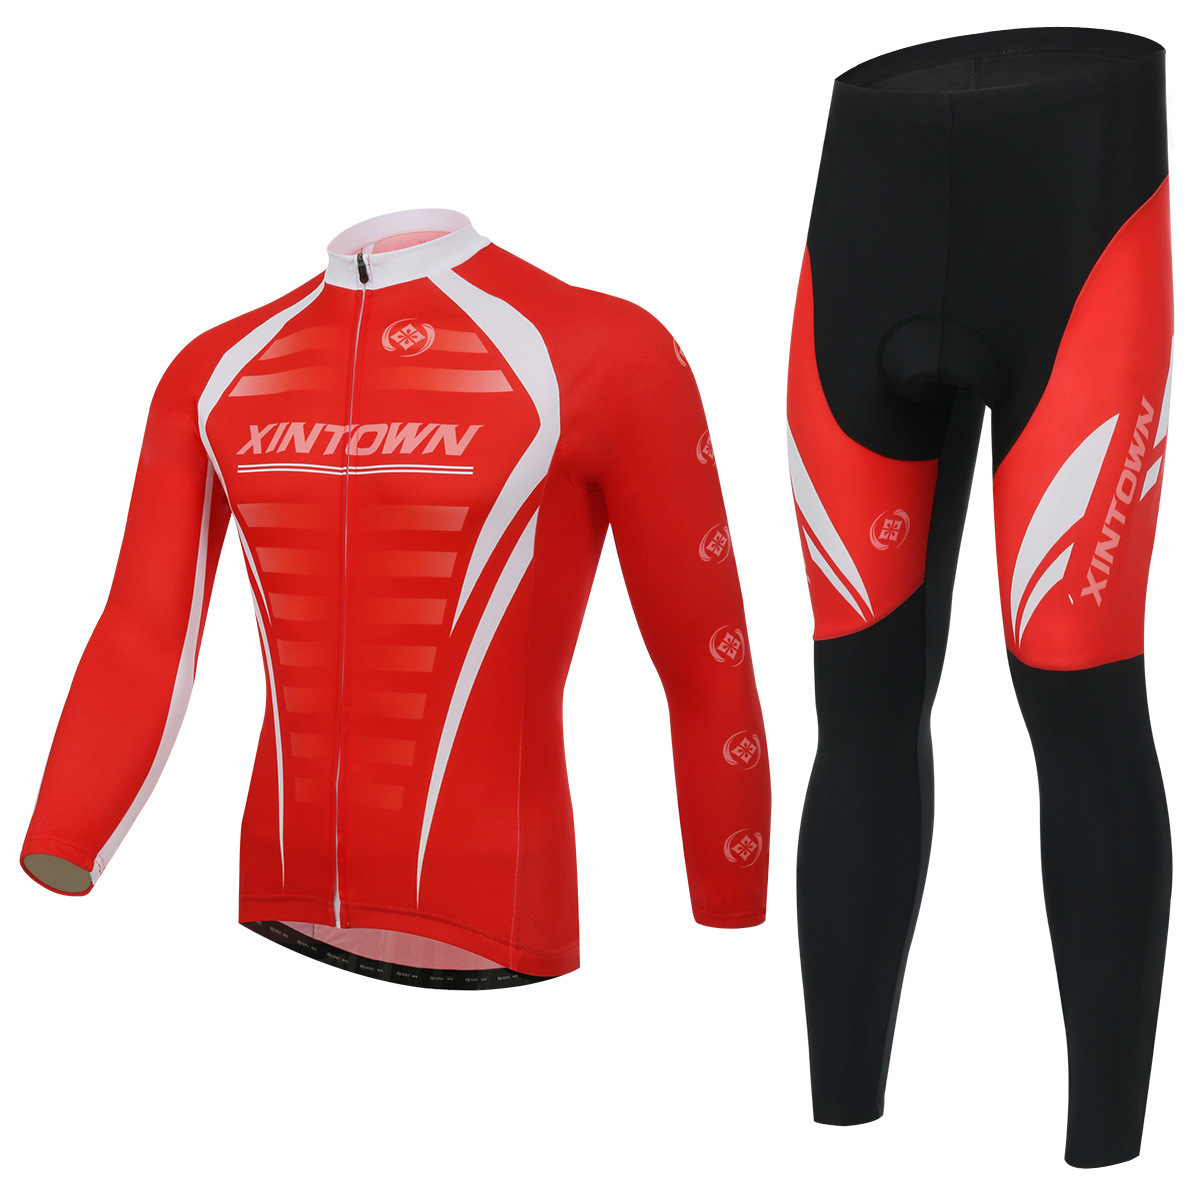 XINTOWN Spring Autumn Long Sleeve Men UV Protect Cycling Jerseys Sets MTB Bike Quick Dry Breathable Riding Jersey Clothing Sets wosawe men s long sleeve cycling jersey sets breathable gel padded mtb tights sportswear for all season cycling clothings